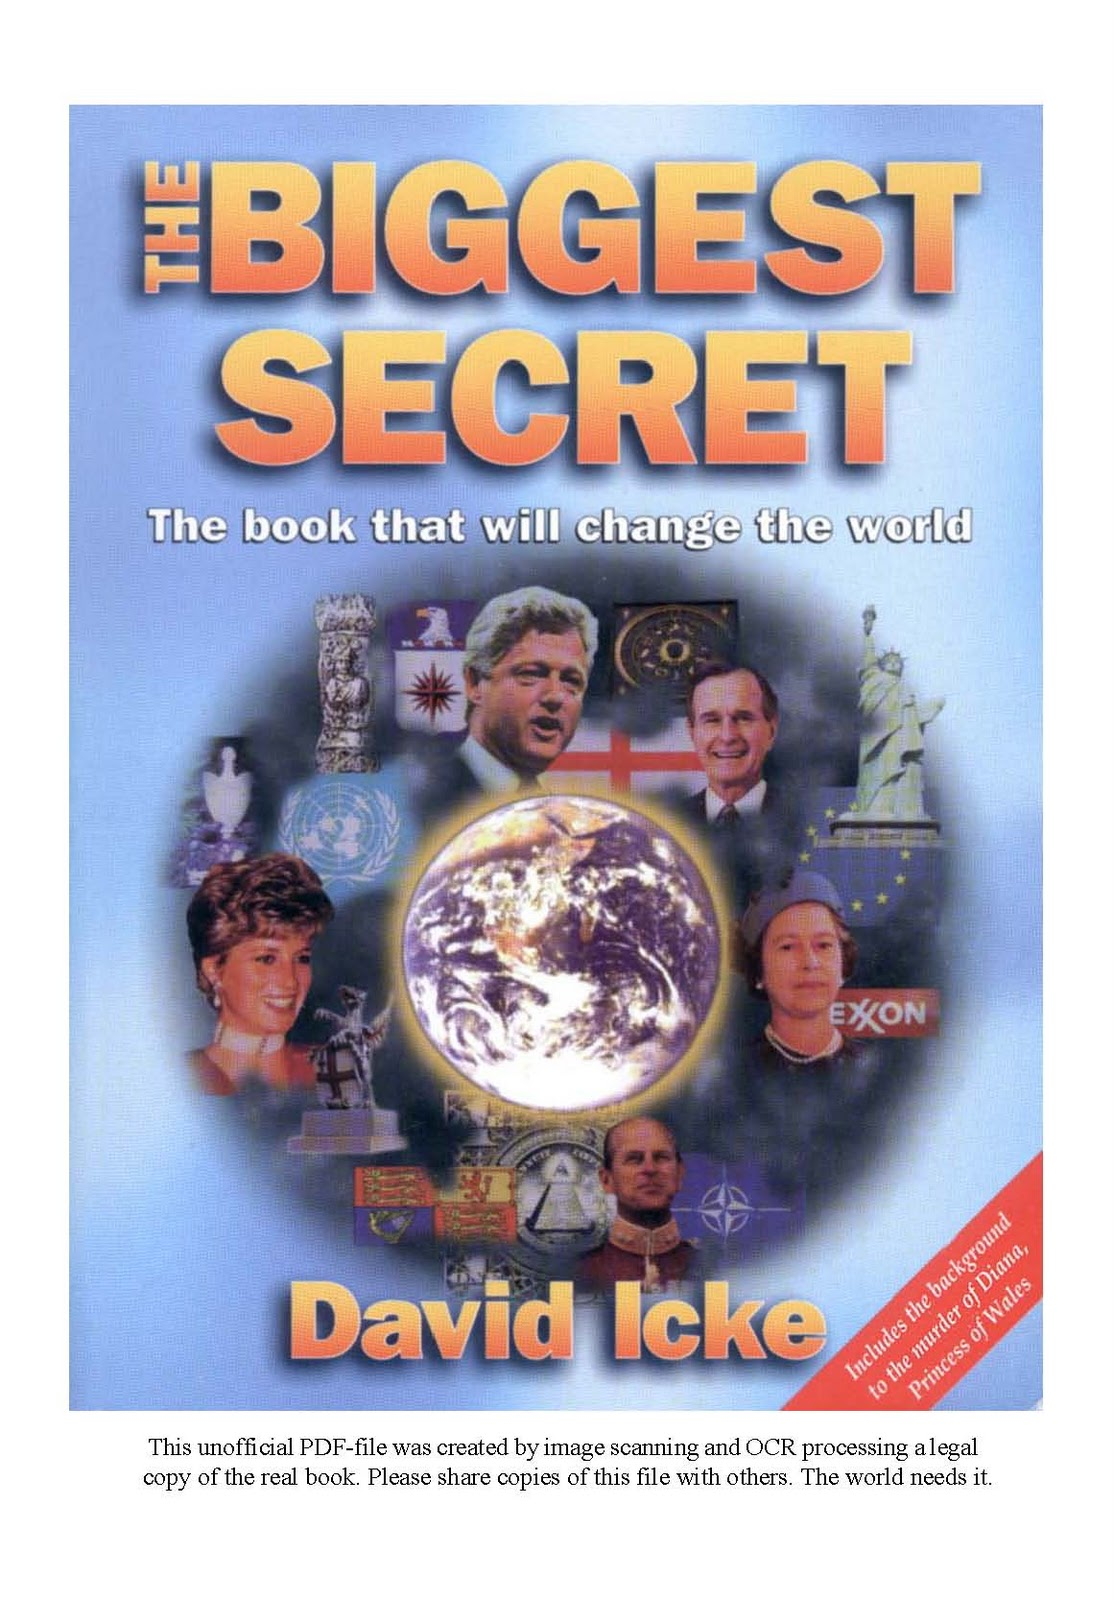 The biggest secret the book that will change the world.